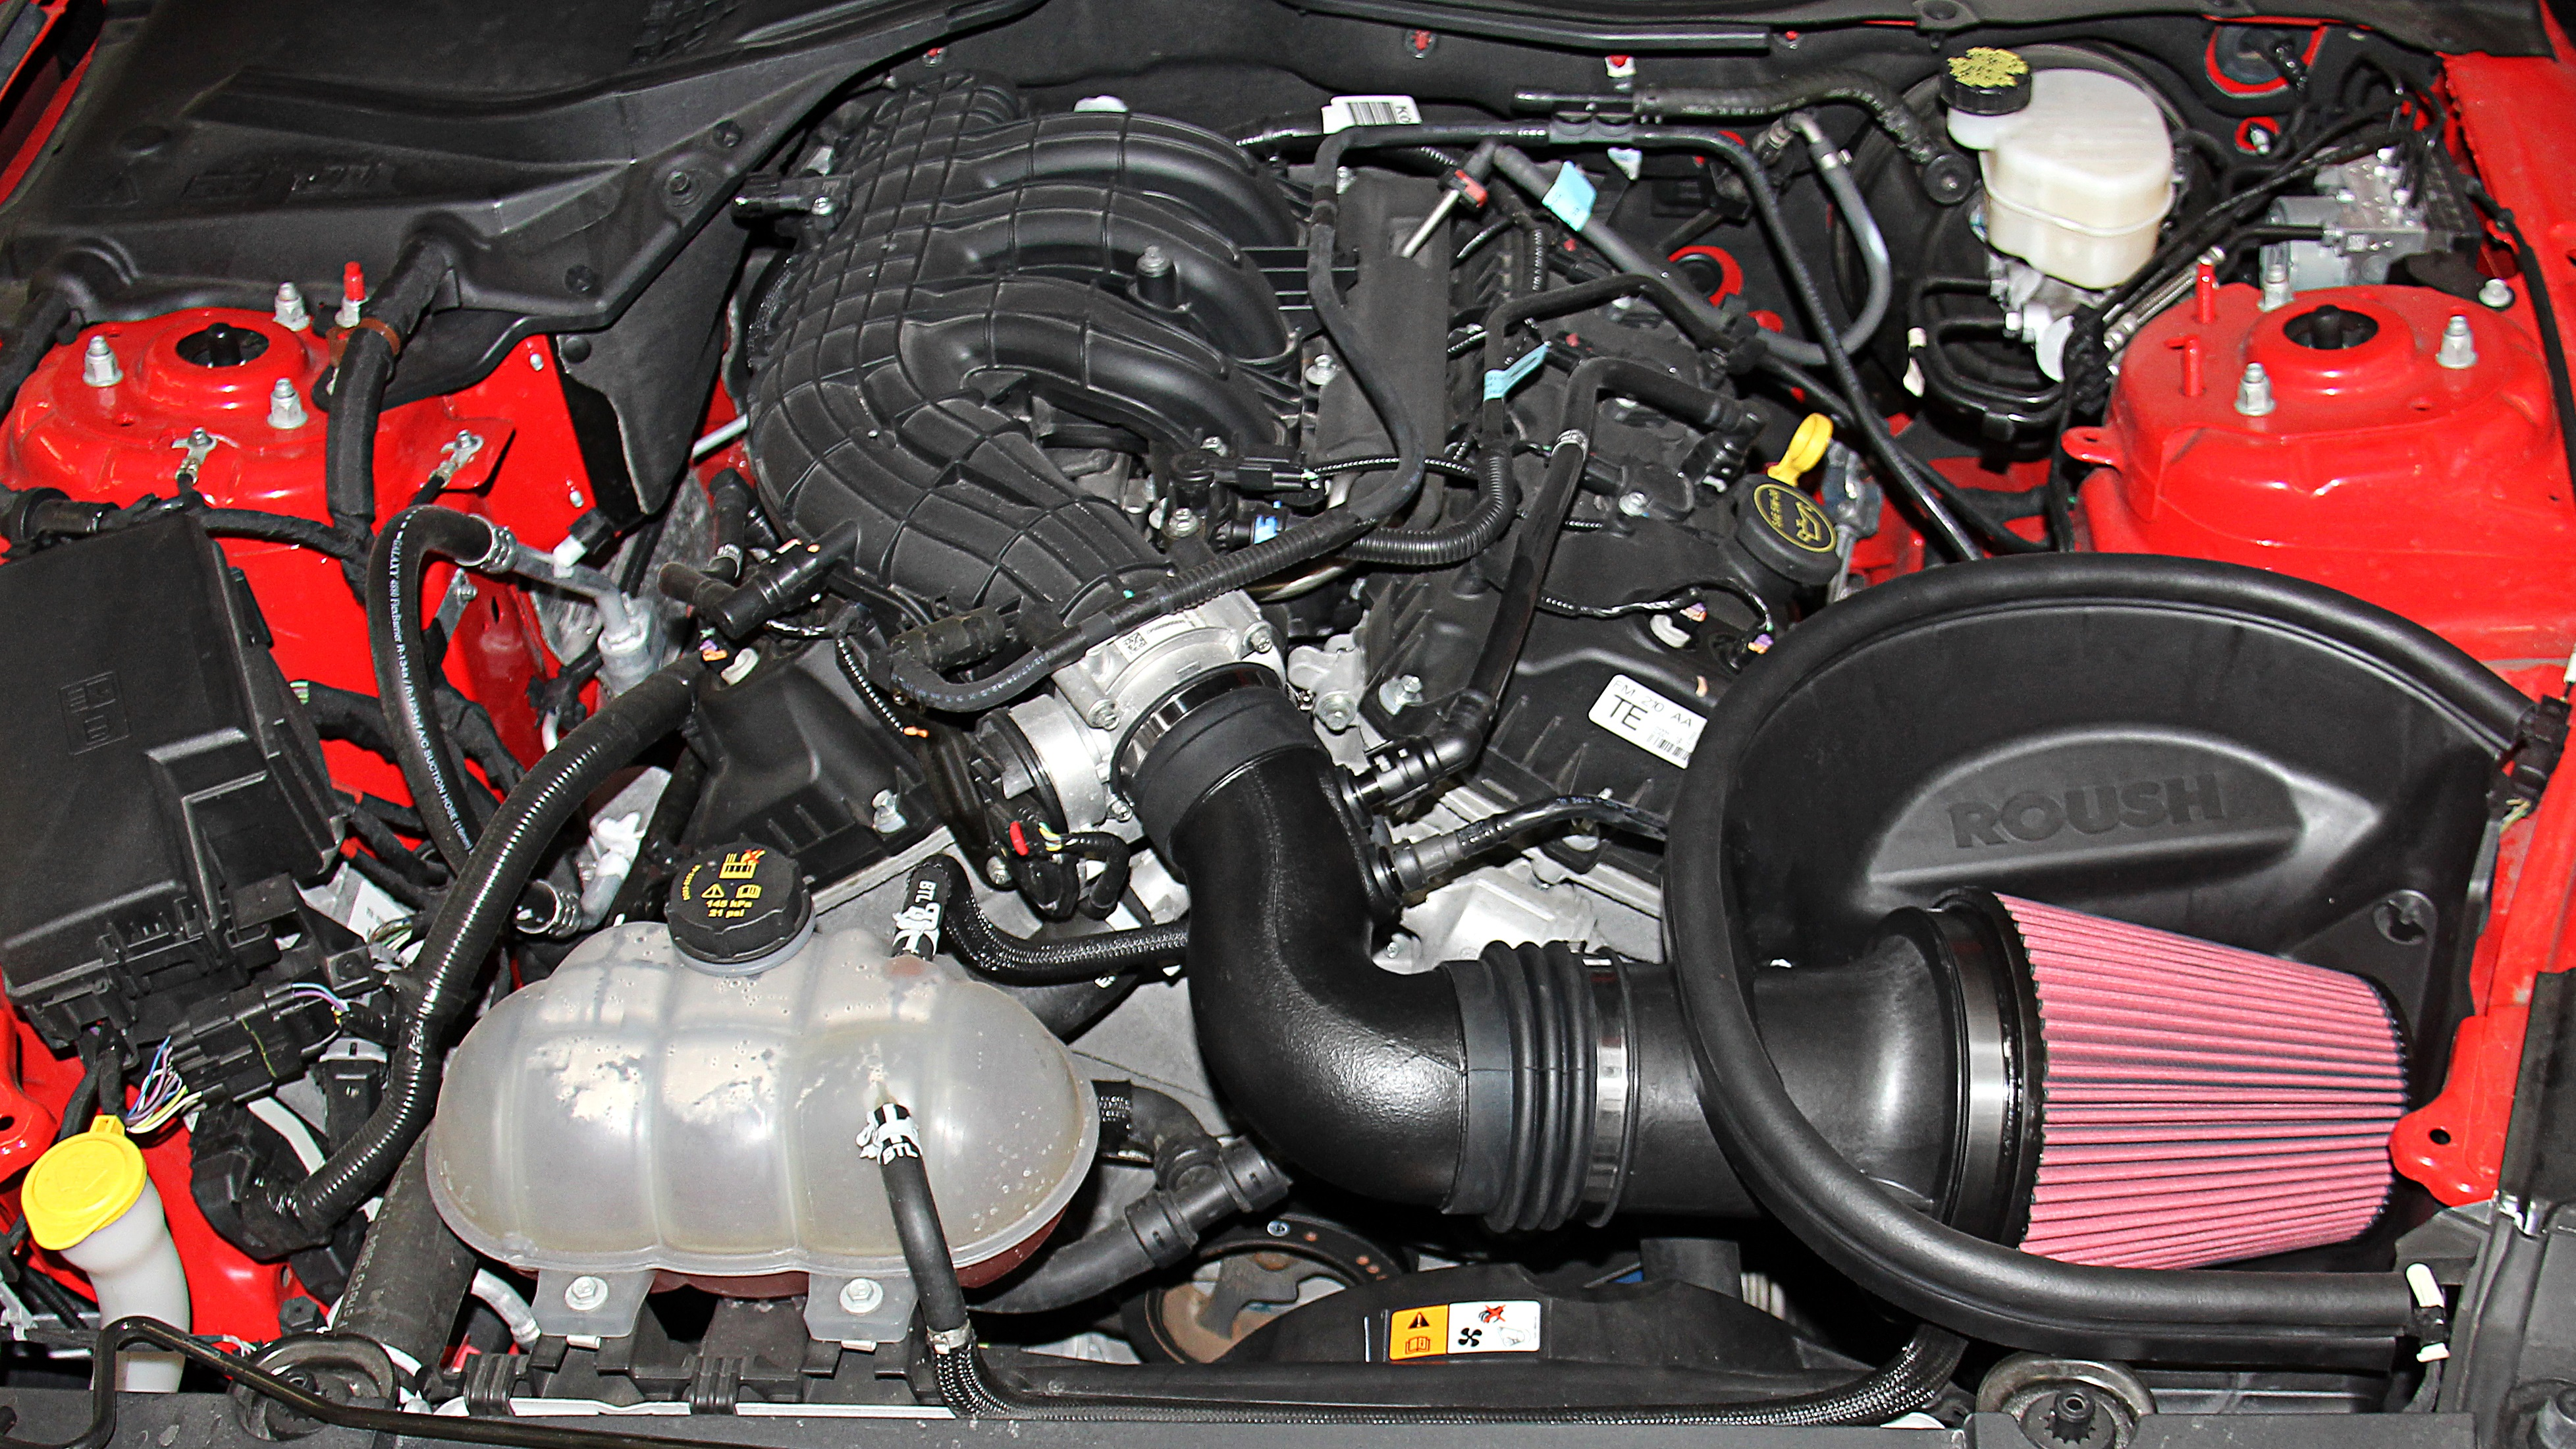 Cold Air Intake Wikipedia Scama Engine Wiring Harness